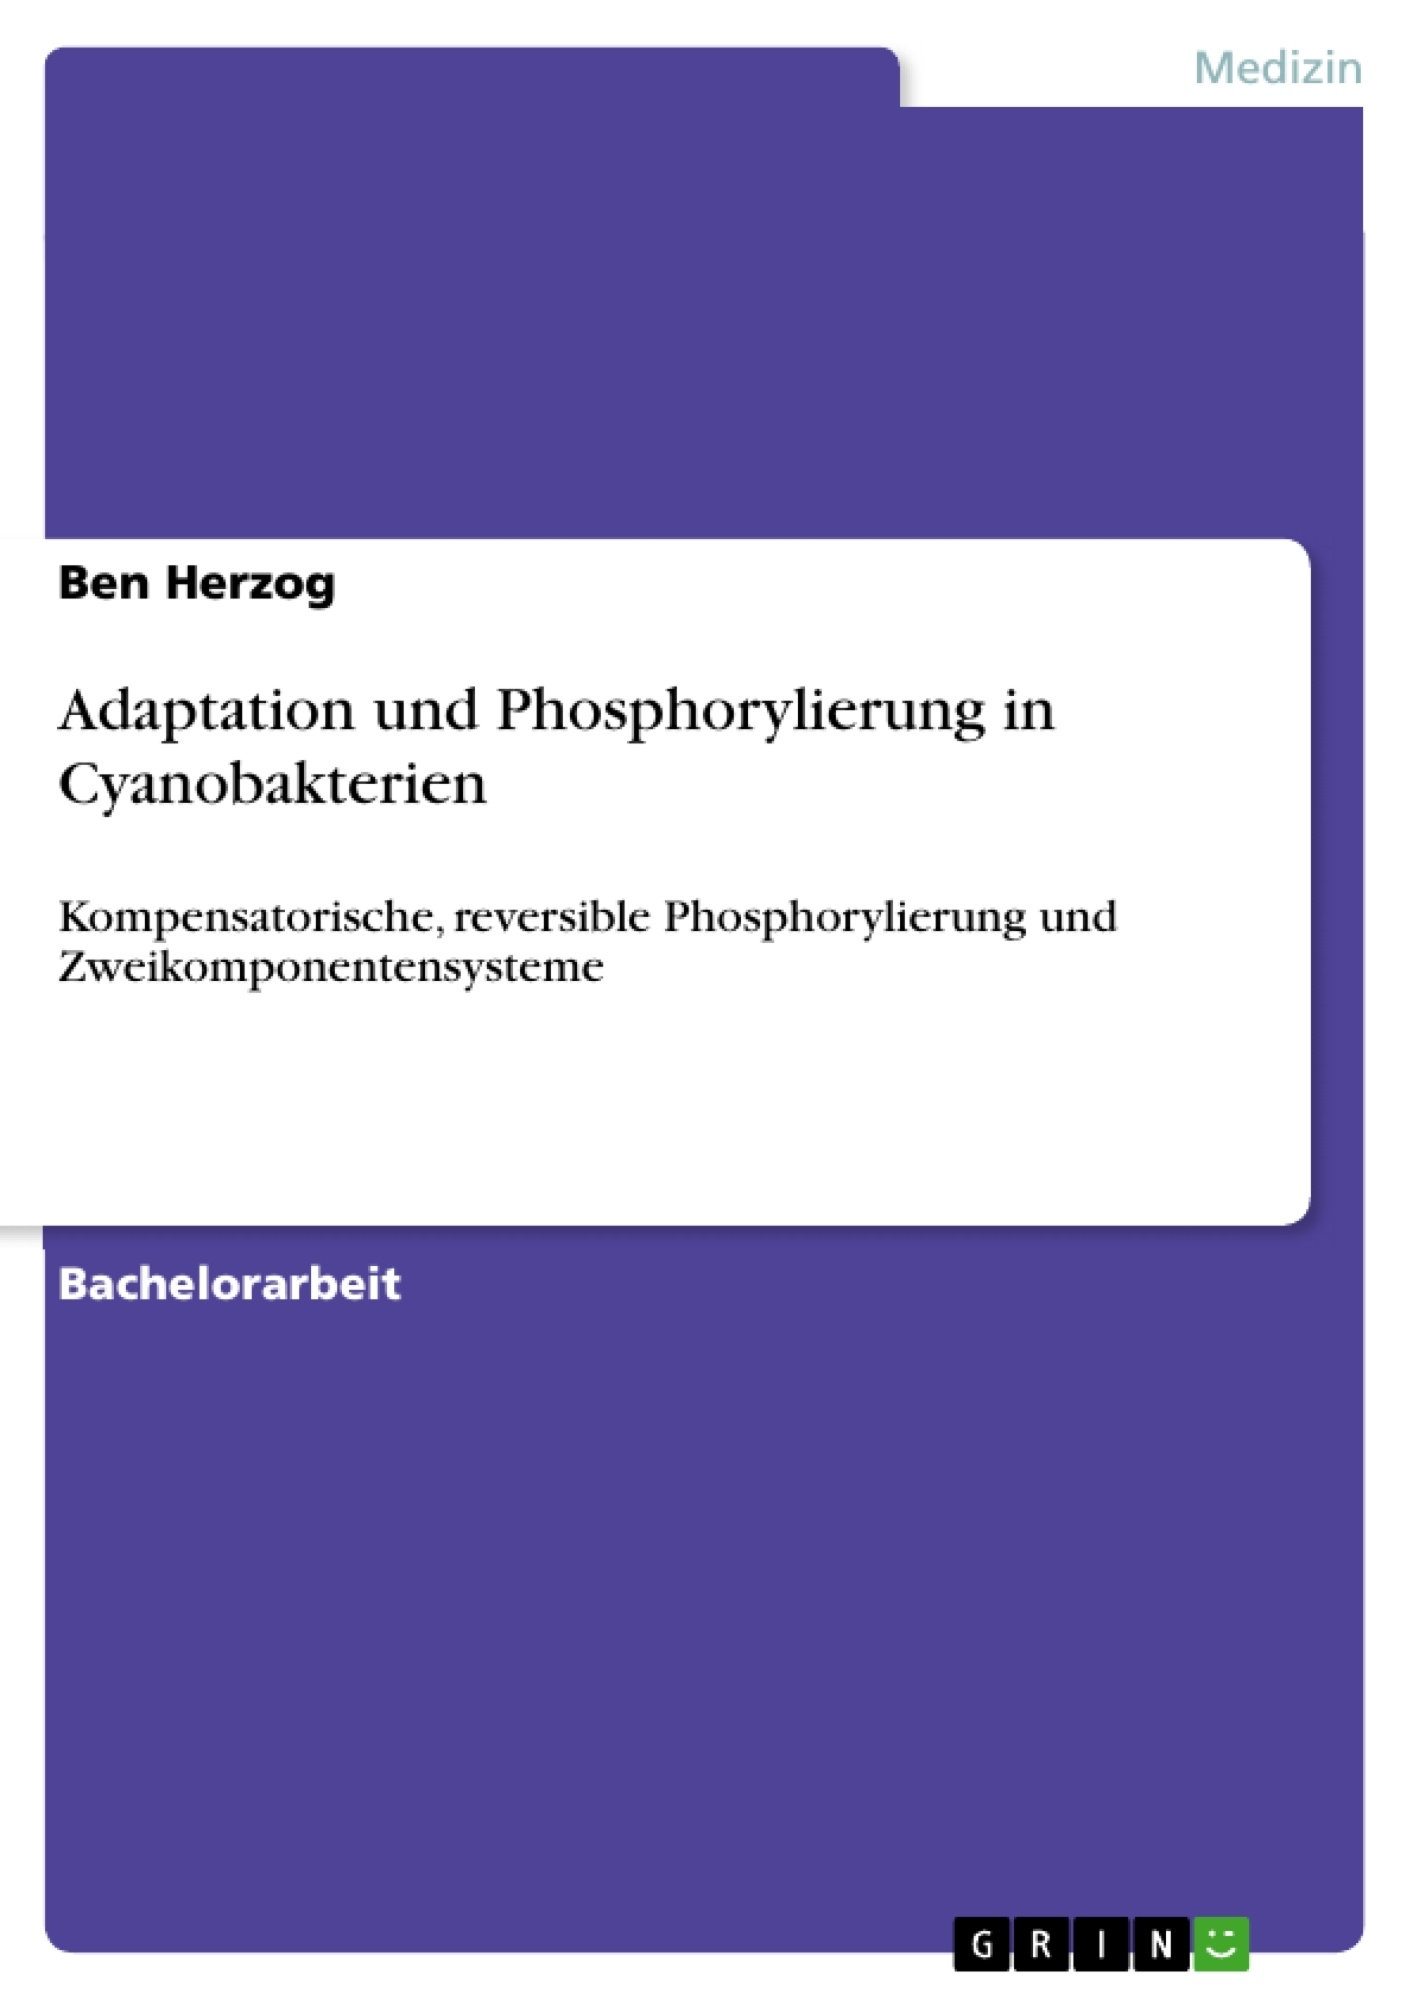 Titel: Adaptation und Phosphorylierung in Cyanobakterien